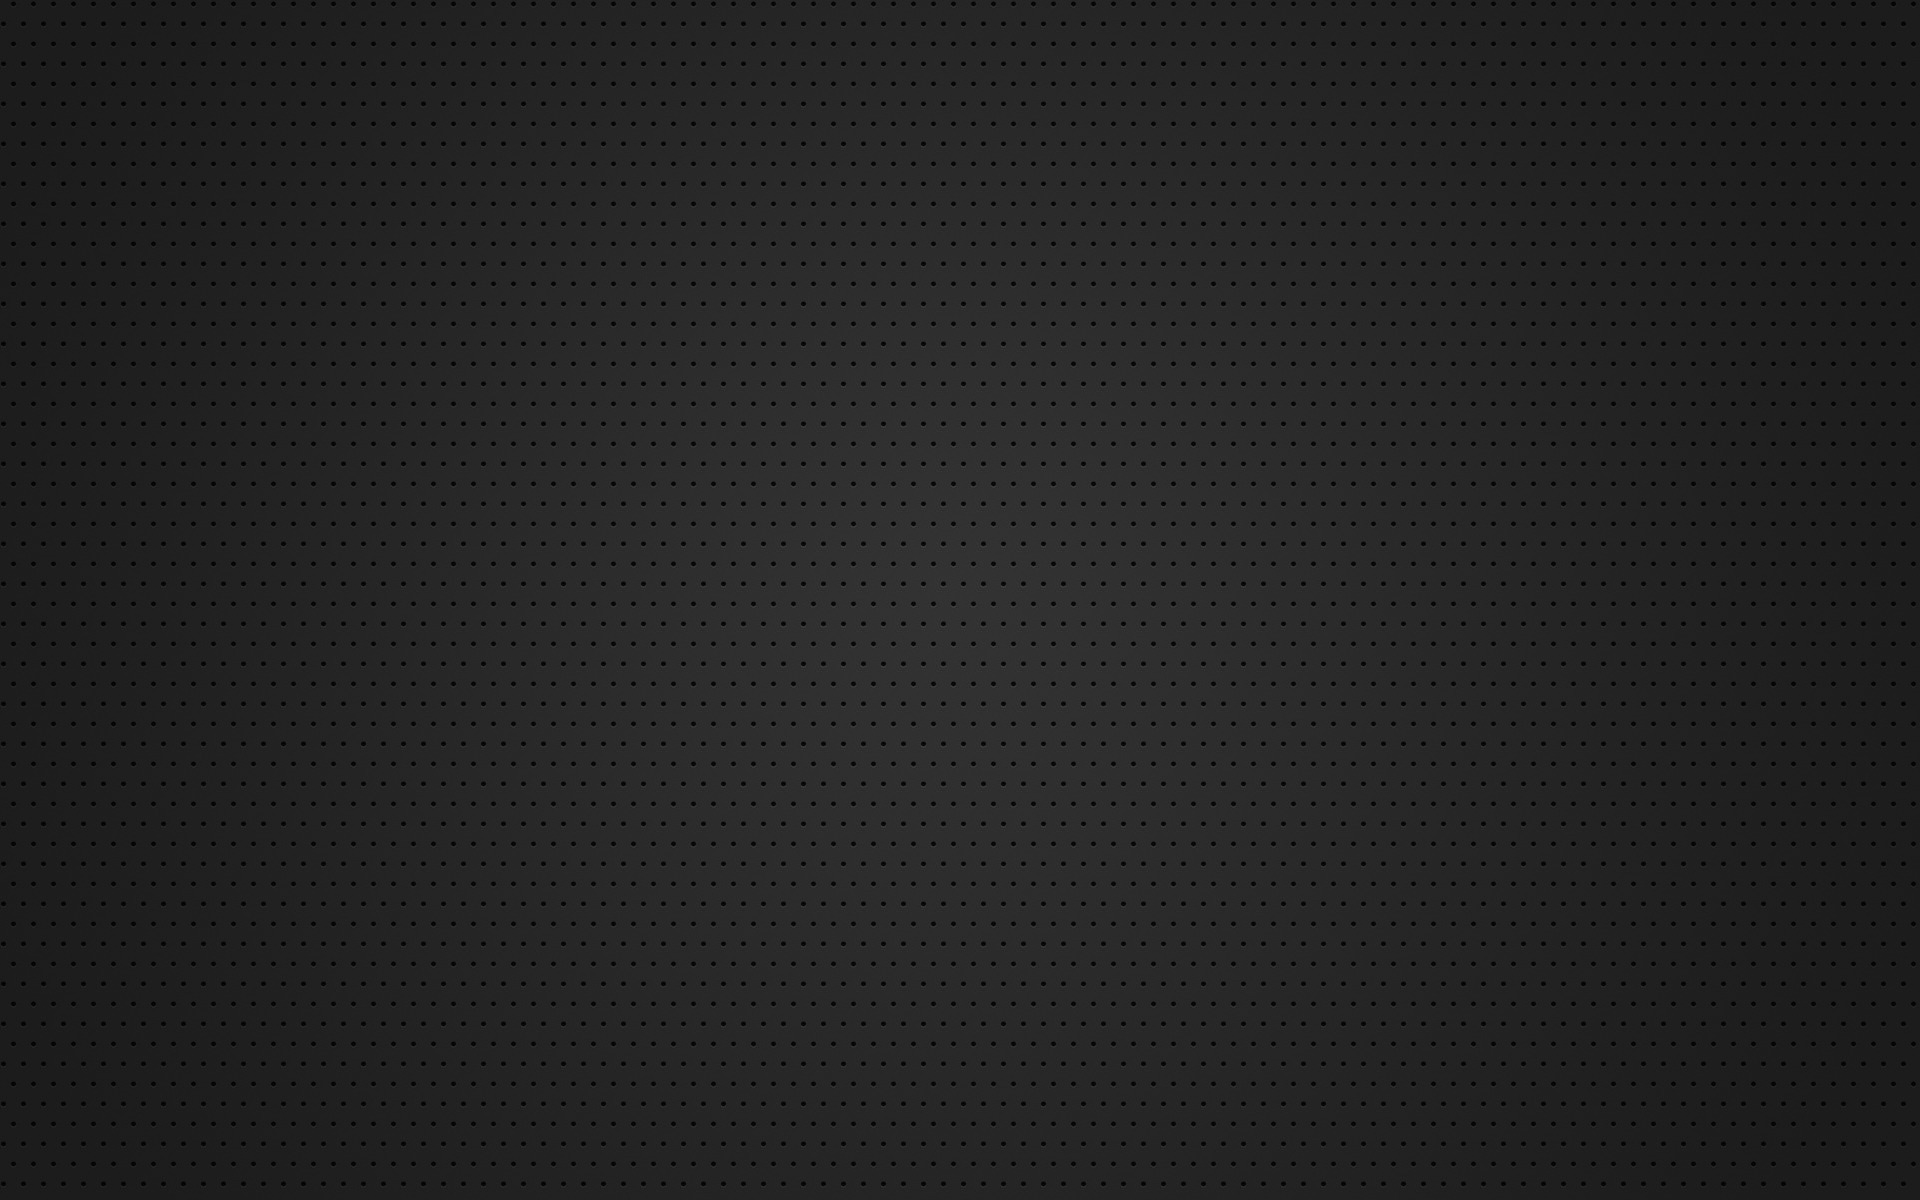 Matte Black Wallpaper - WallpaperSafari